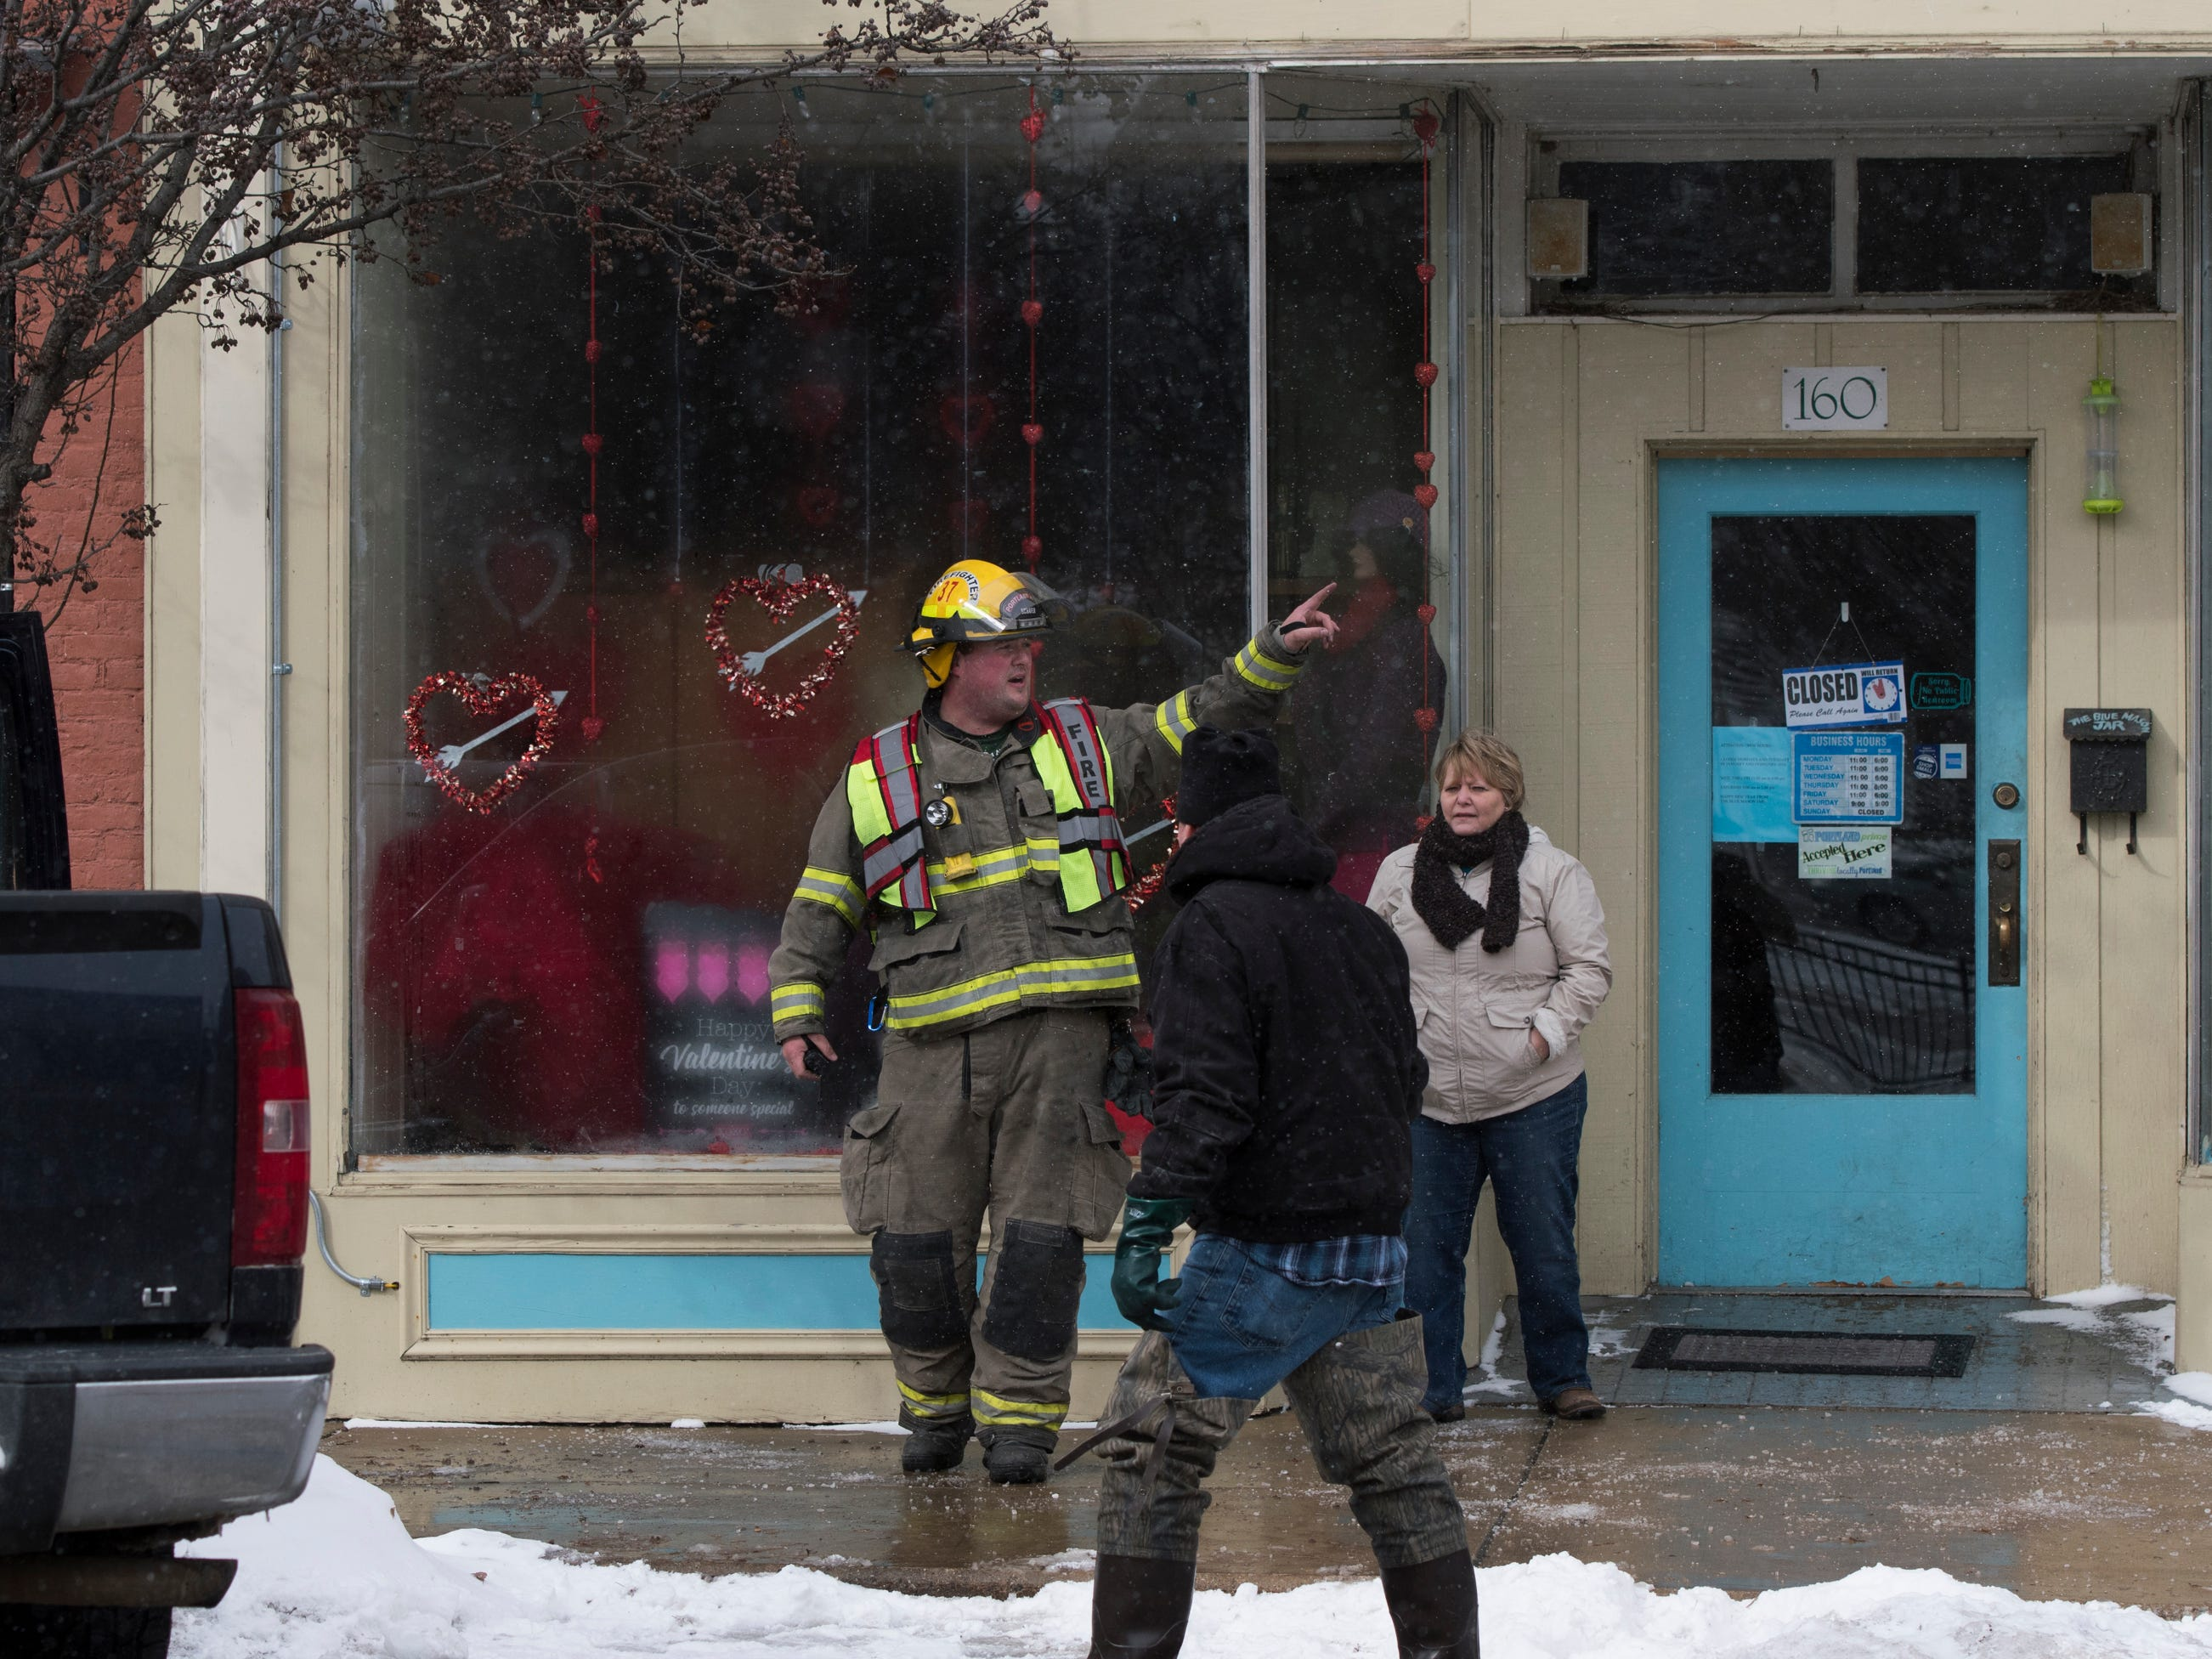 Firefighters go door-to-door at businesses and residences in downtown Portland, Michigan, near Kent Street and East Grand River Avenue evacuating people as smoke was reported in a building along Kent Street.